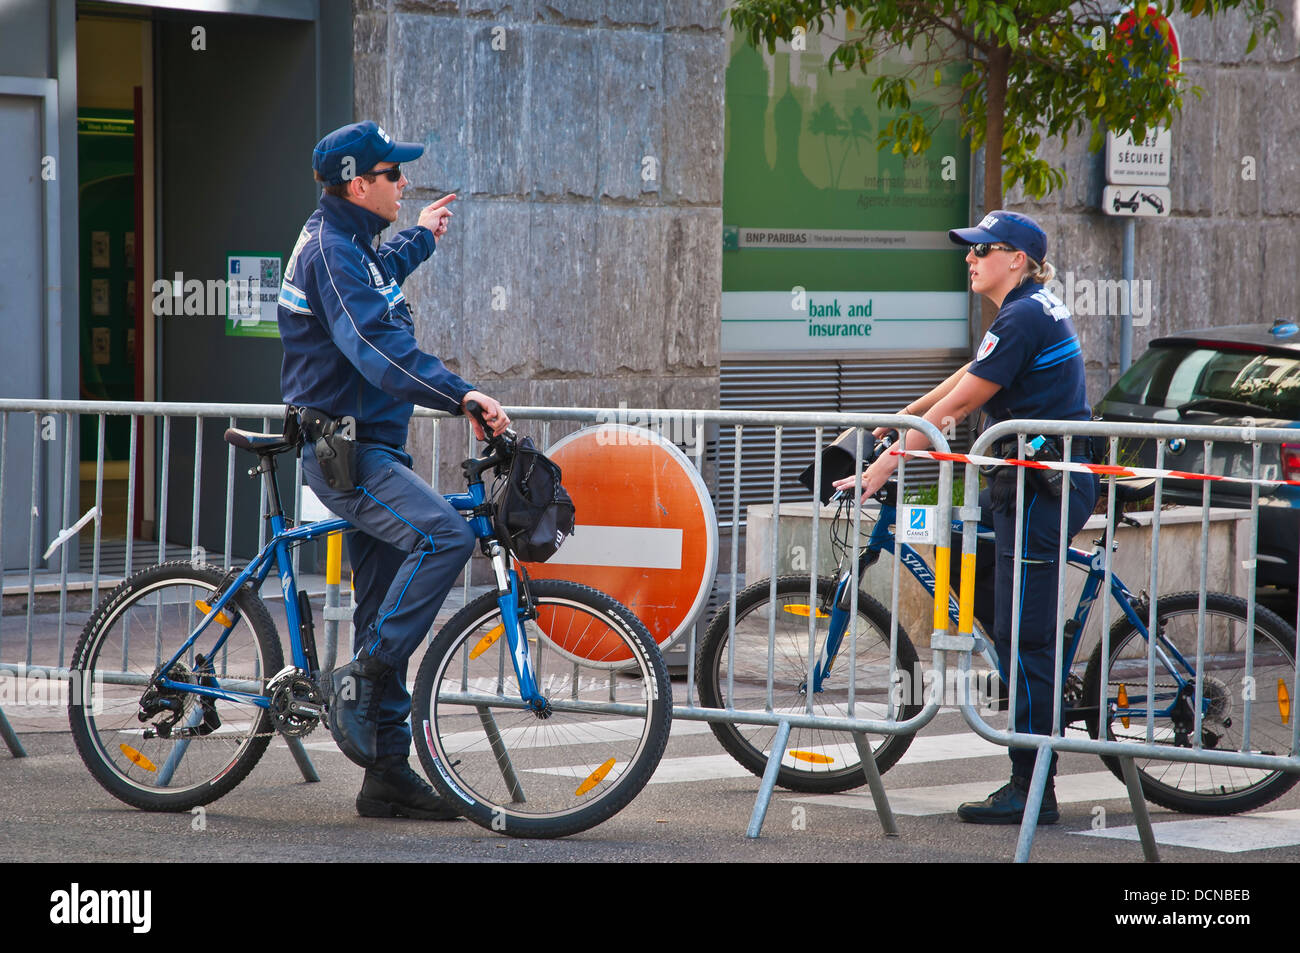 A street scene with two policemen conversations, Cannes, French Riviera, France. - Stock Image